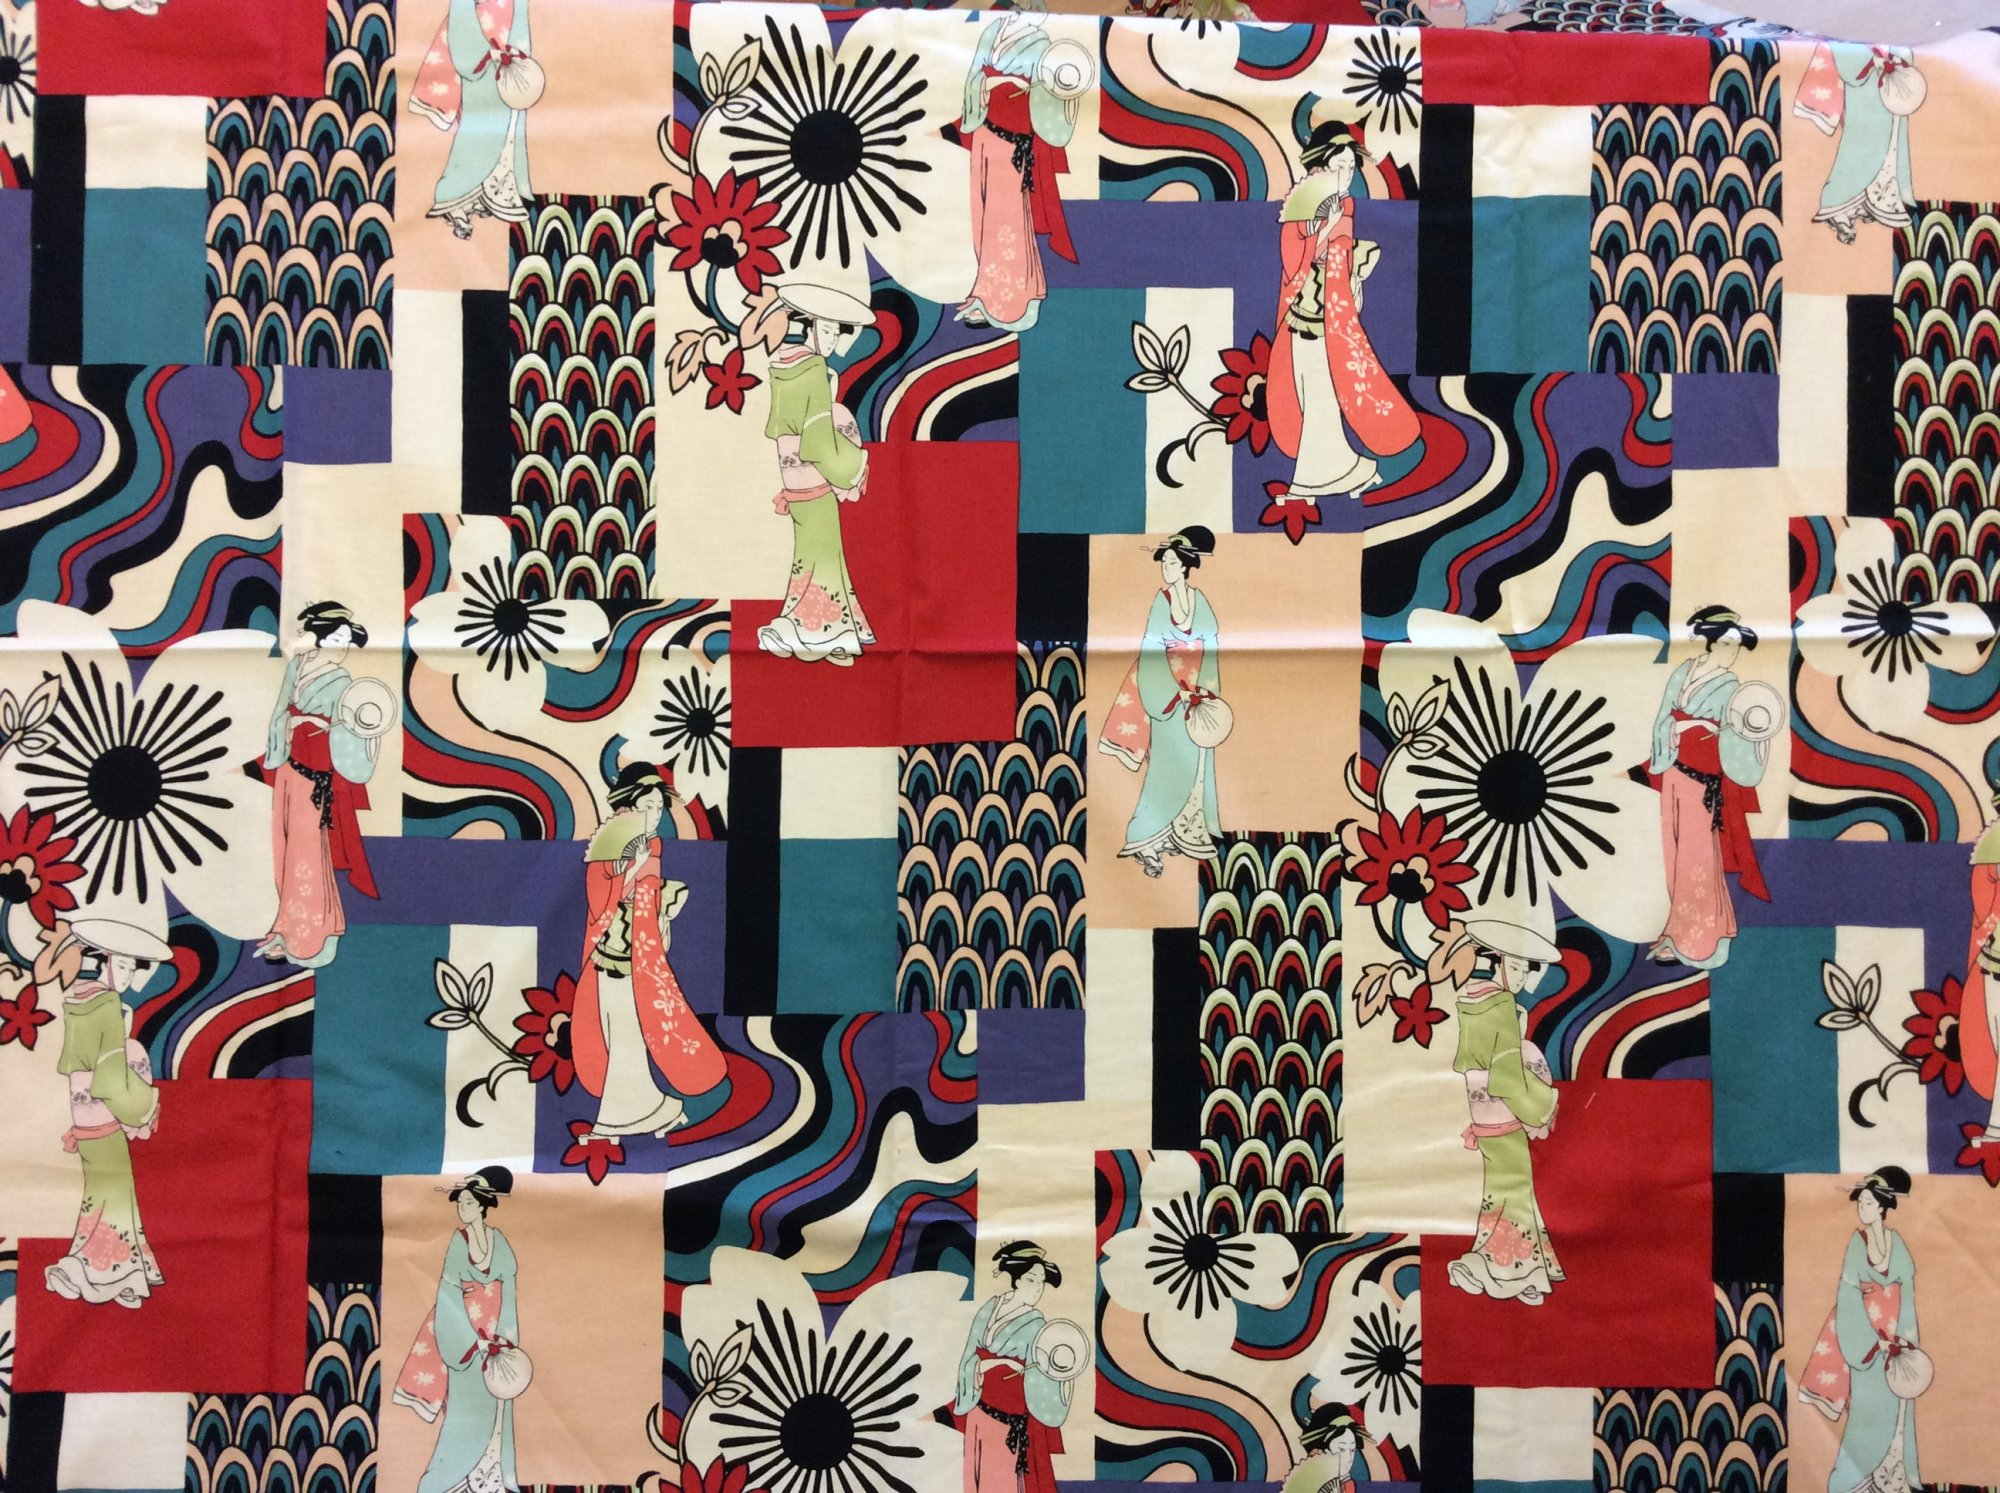 Rare! Out of Print Alexander Henry! Sold by the Yard little tokyo Geisha Japan Modern Fashion Floral Cotton Quilt Fabric RPAH20